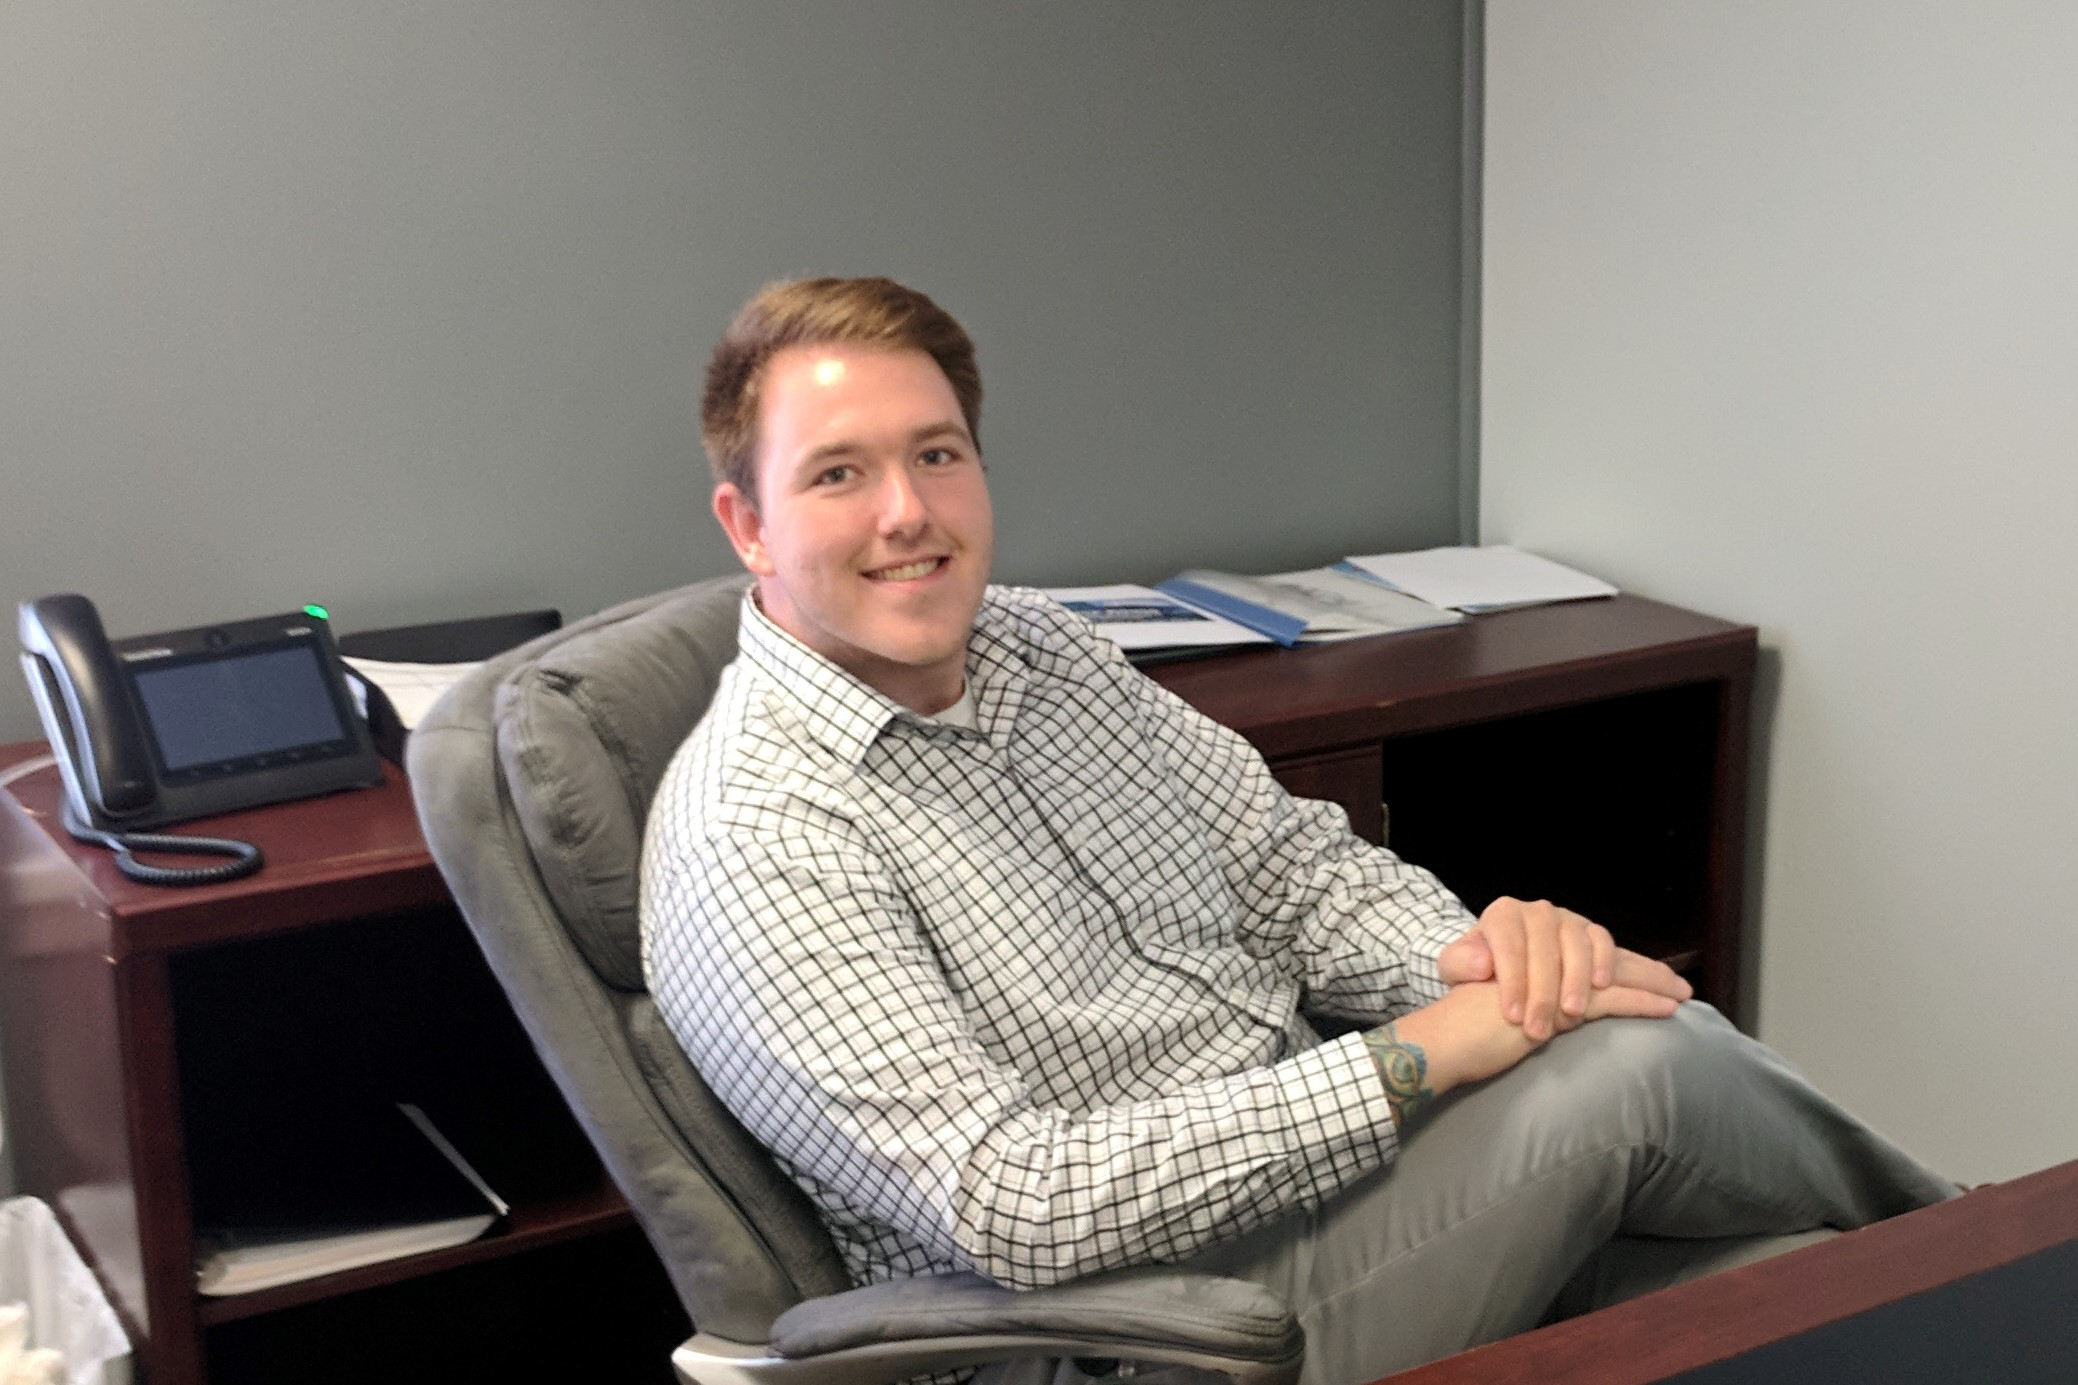 Nick Myers is a sales associate at Technology Solutions of Michigan